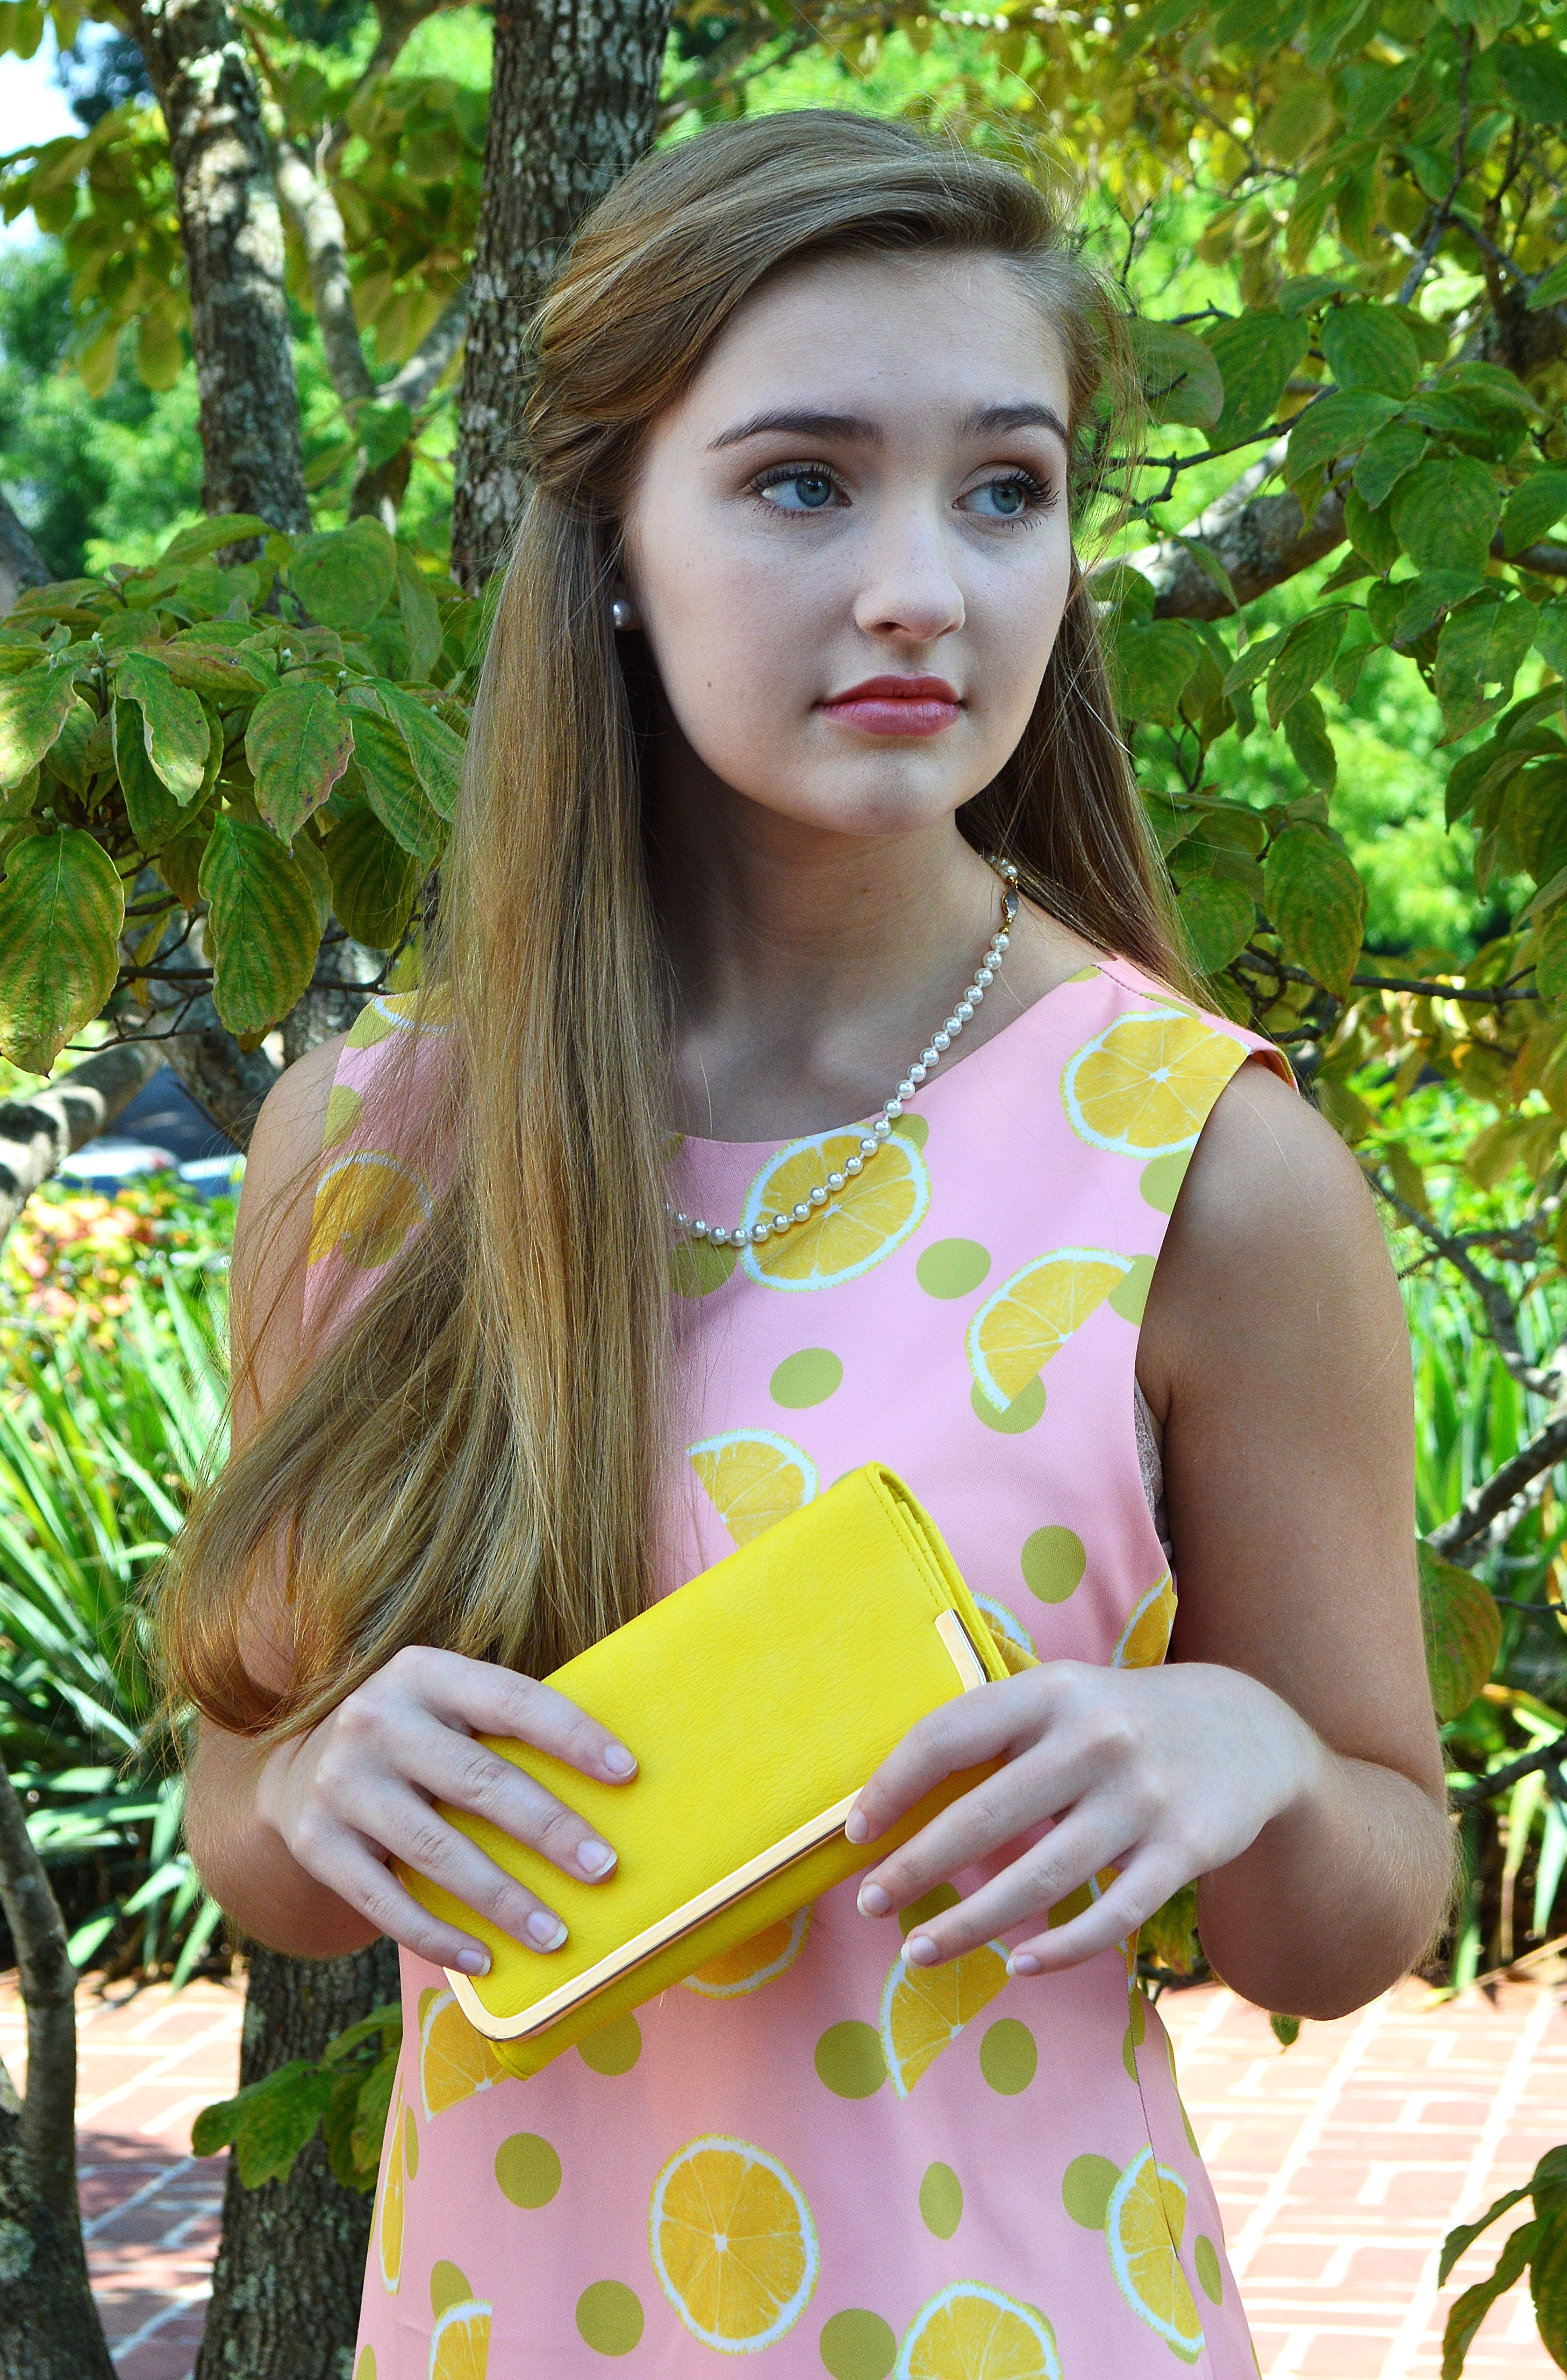 Jeelry ith yellow dress ith pockets